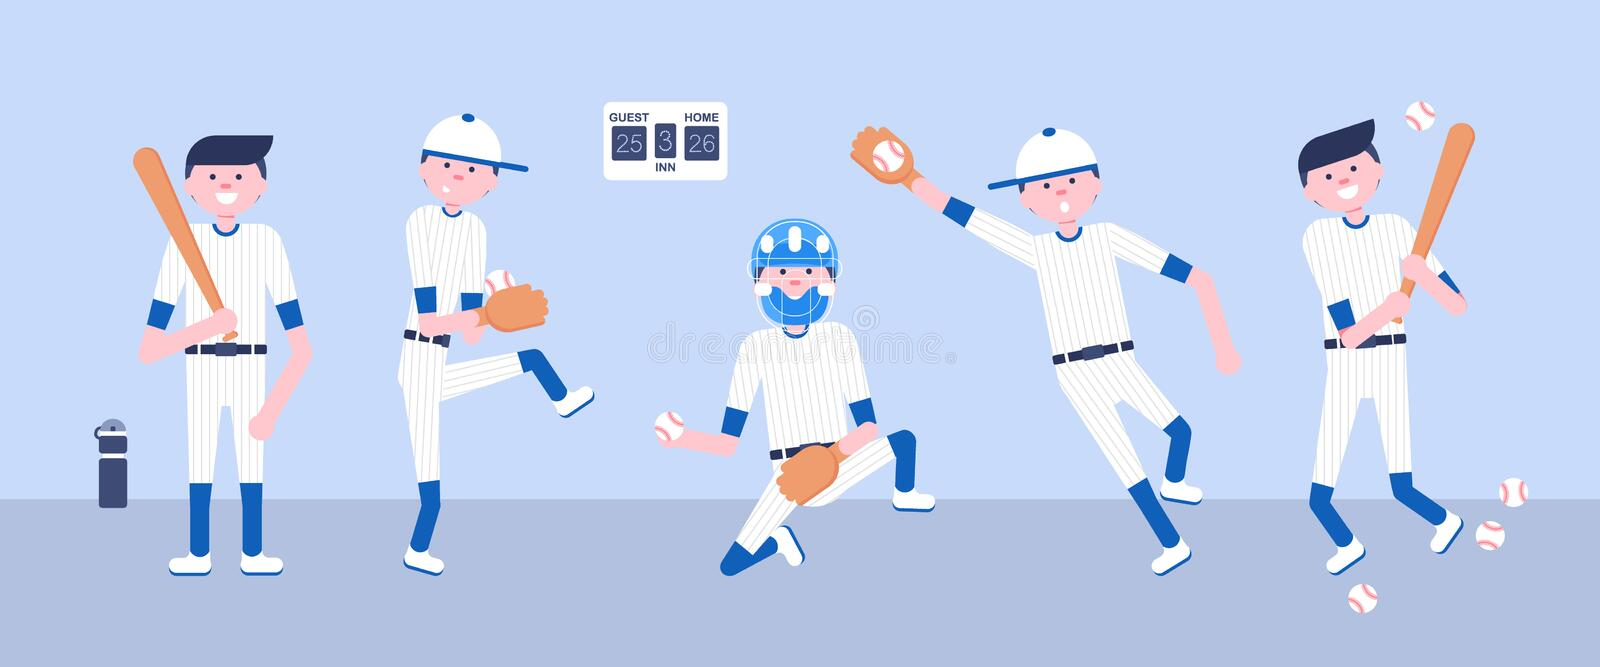 Illustration de vecteur Joueurs de bande dessinée de base-ball illustration stock